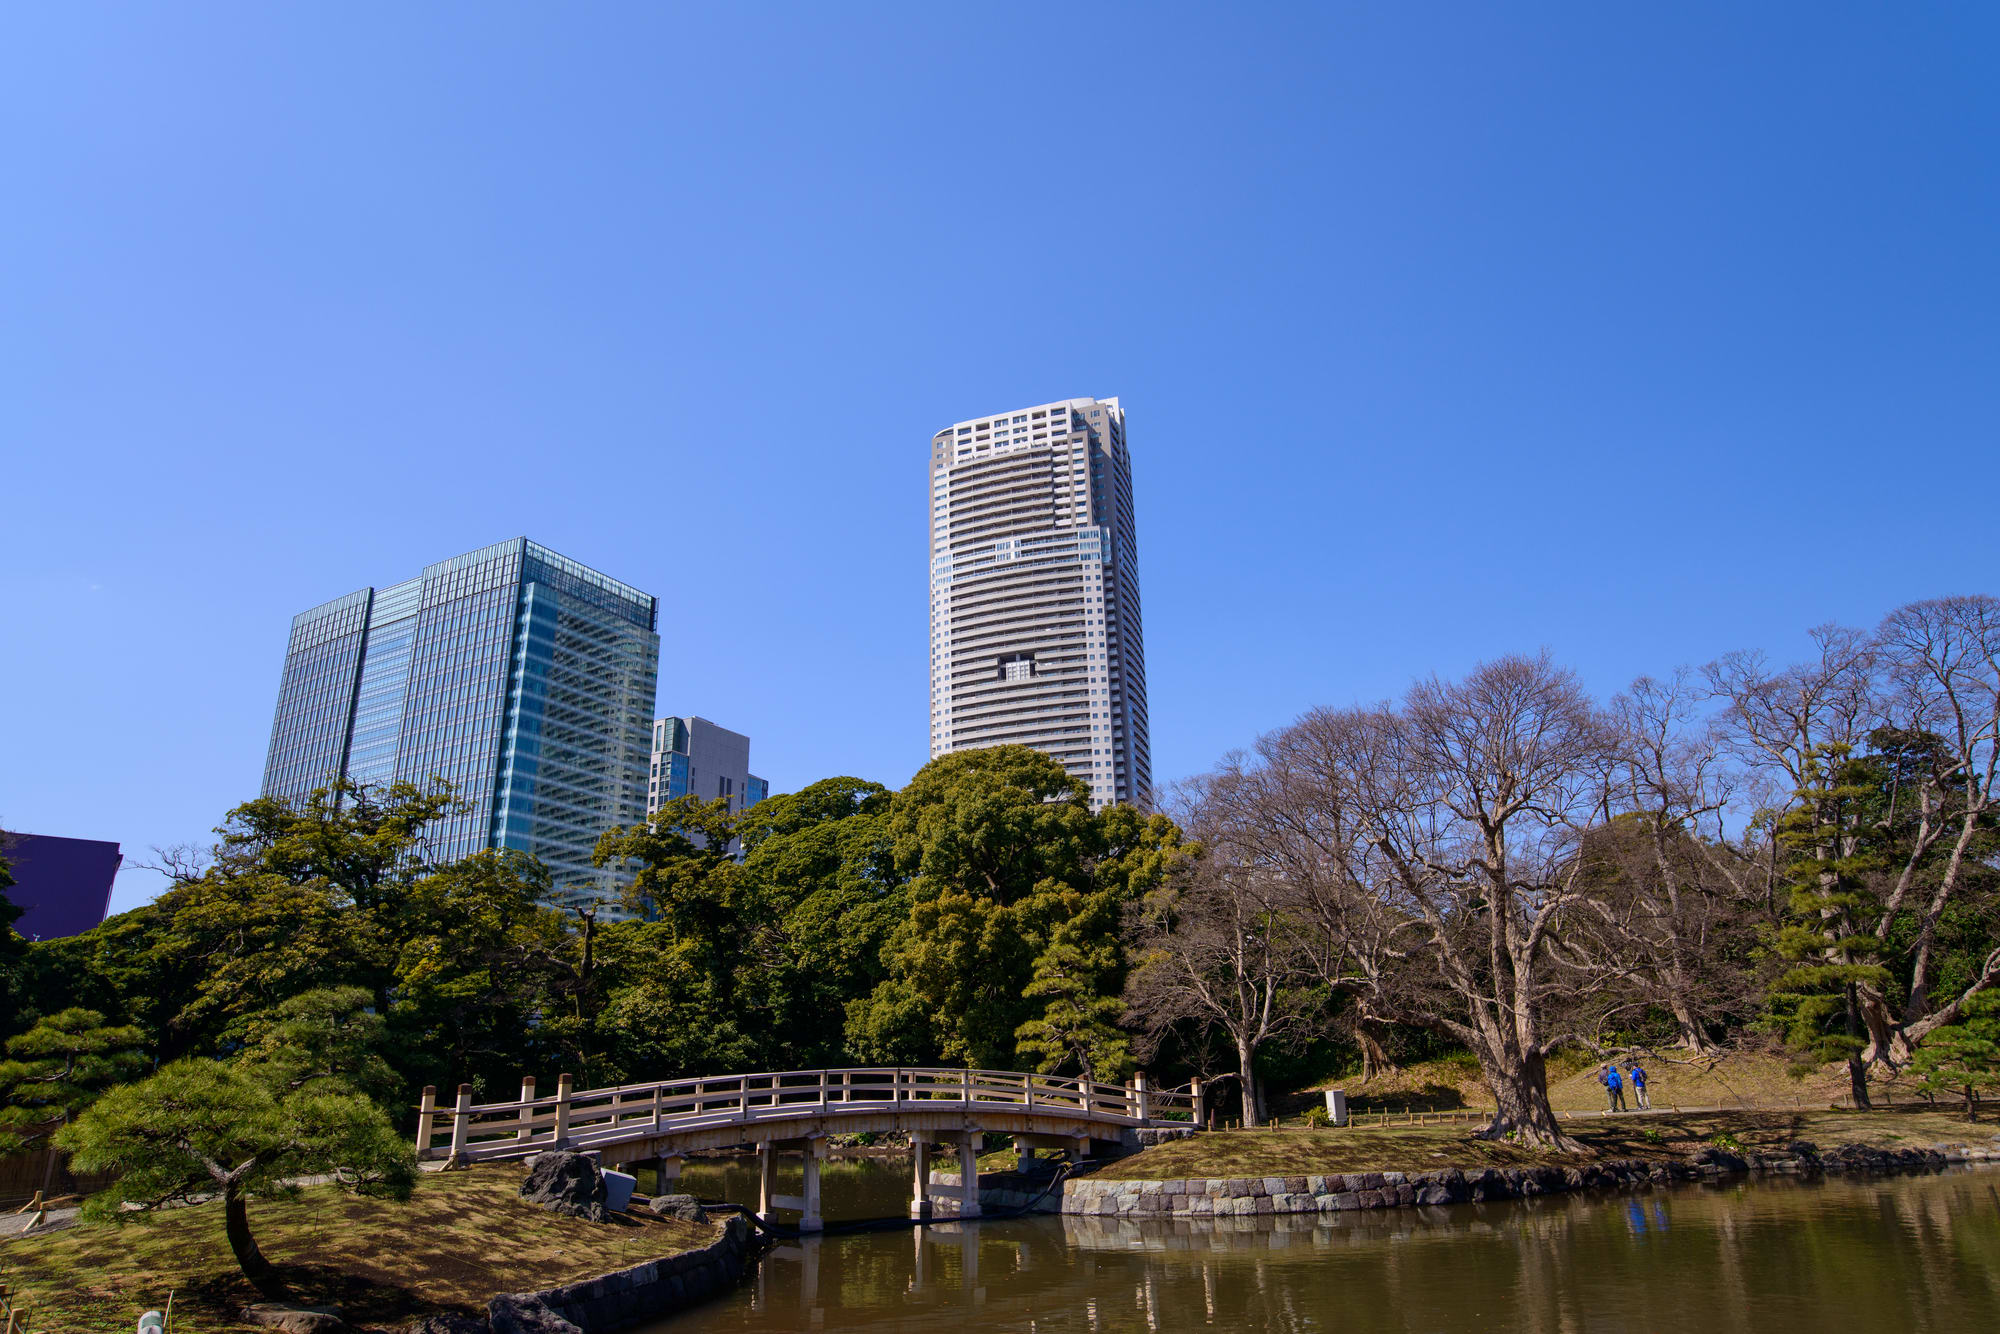 """Hama-rikyu Garden"": a Japanese Style Garden Where You Can Enjoy Flowers of the Seasons"